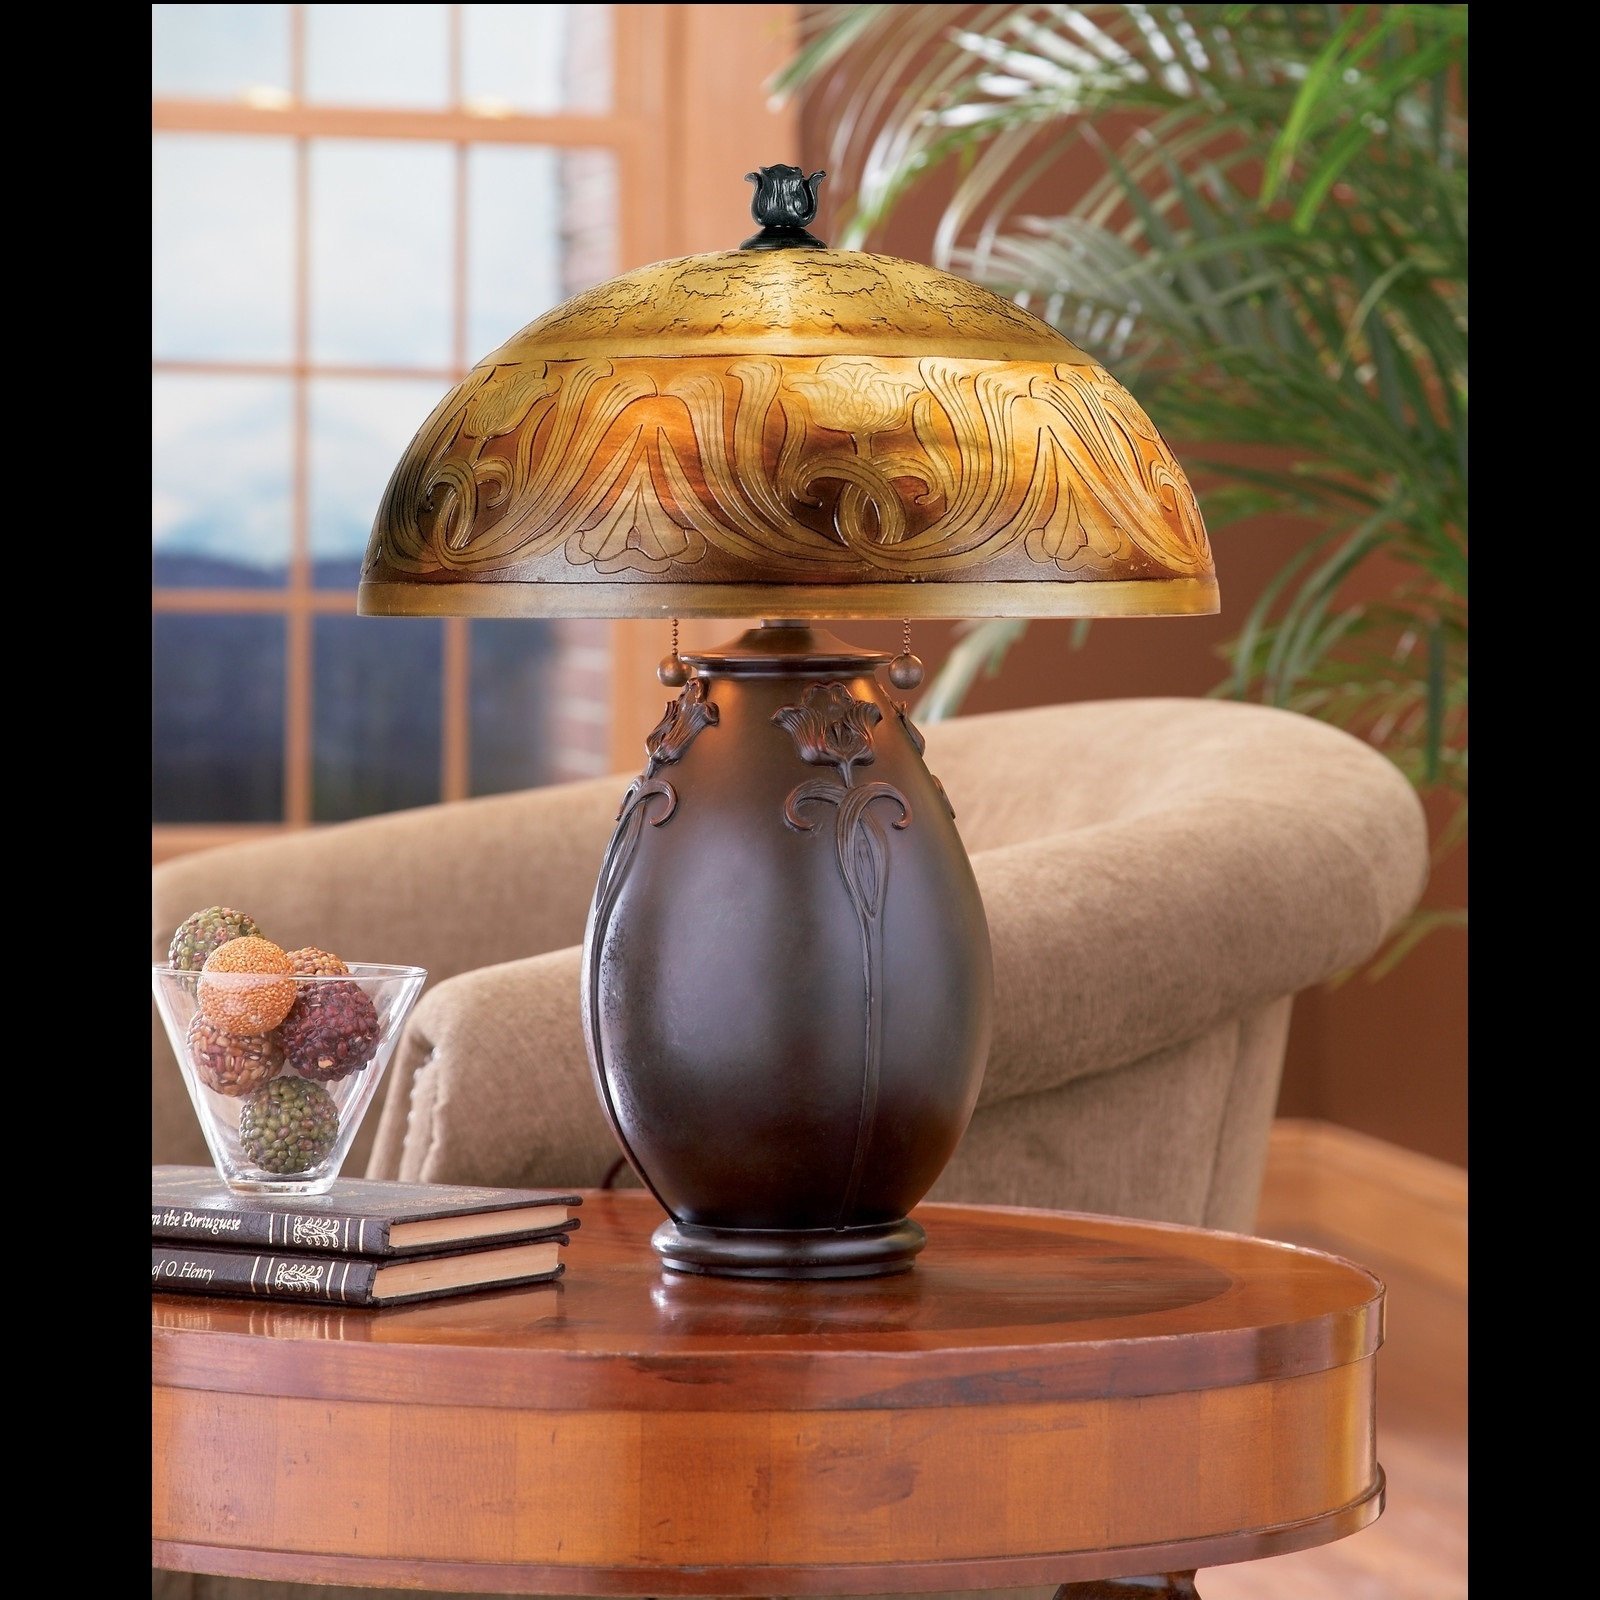 Quoizel glenhaven table lamp light collections light ideas quoizel table lamps quoizel vvth6221 desk lamps thompson lamps quoizel qj6781tr glenhaven mozeypictures Gallery